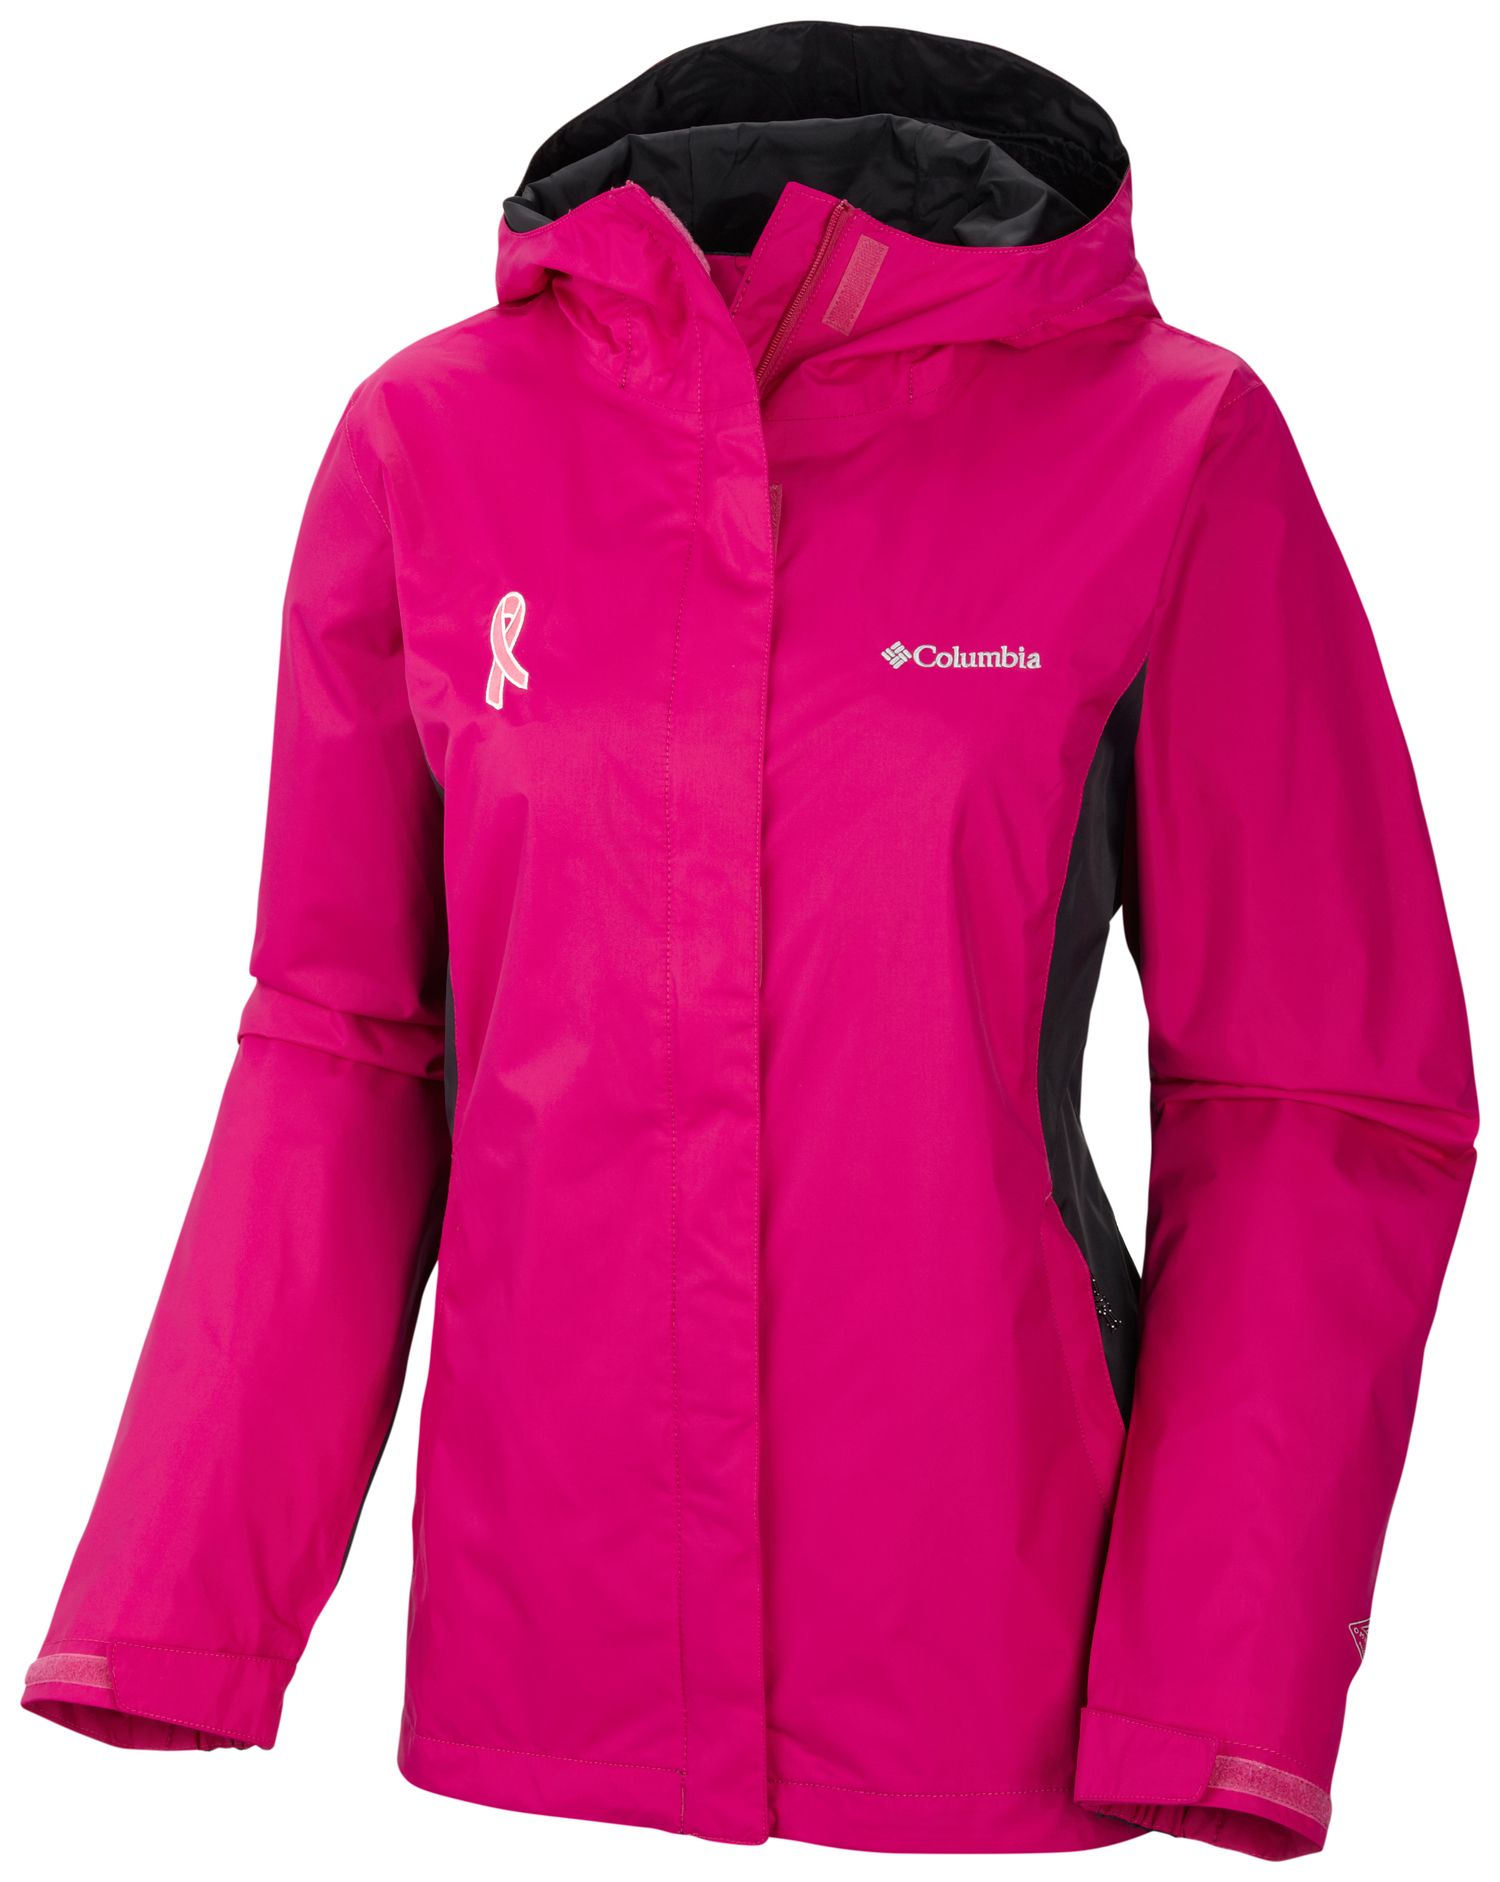 Women's Black Raincoats | DICK'S Sporting Goods